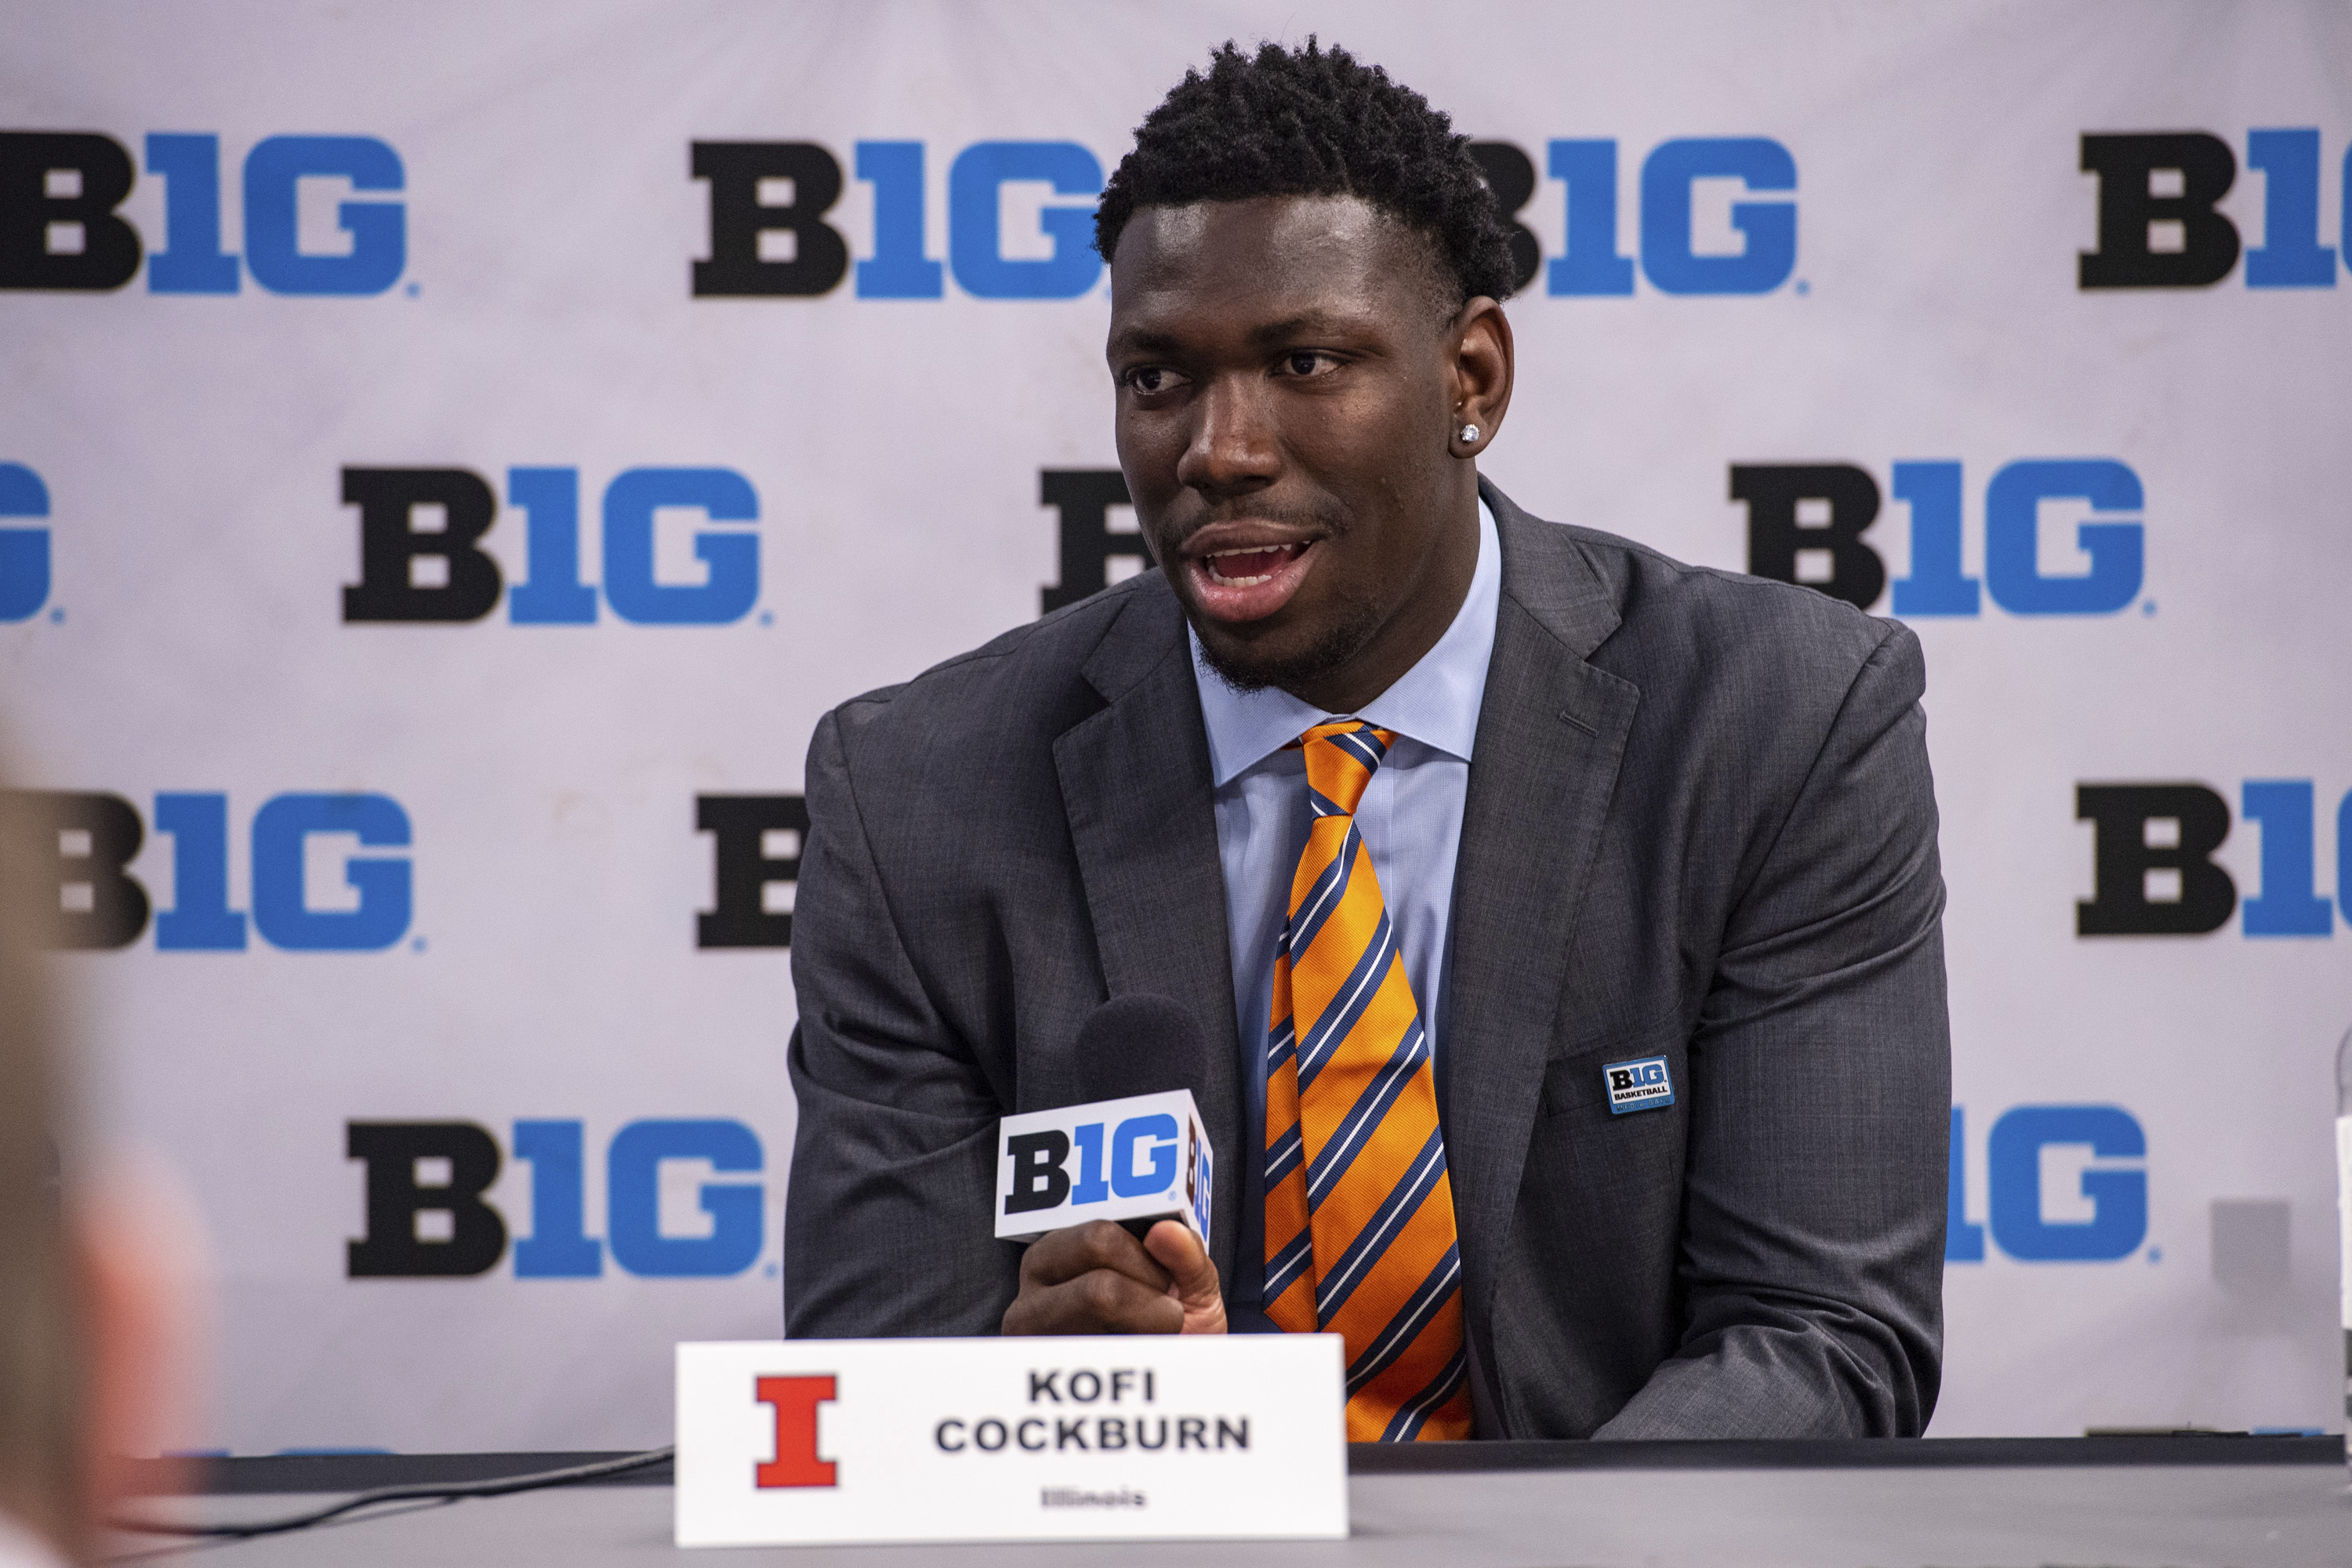 """""""I'm willing to put the work in, and I'm willing to put it all on the line,"""" Kofi Cockburn said. """"Illinois basketball means a lot to me."""""""